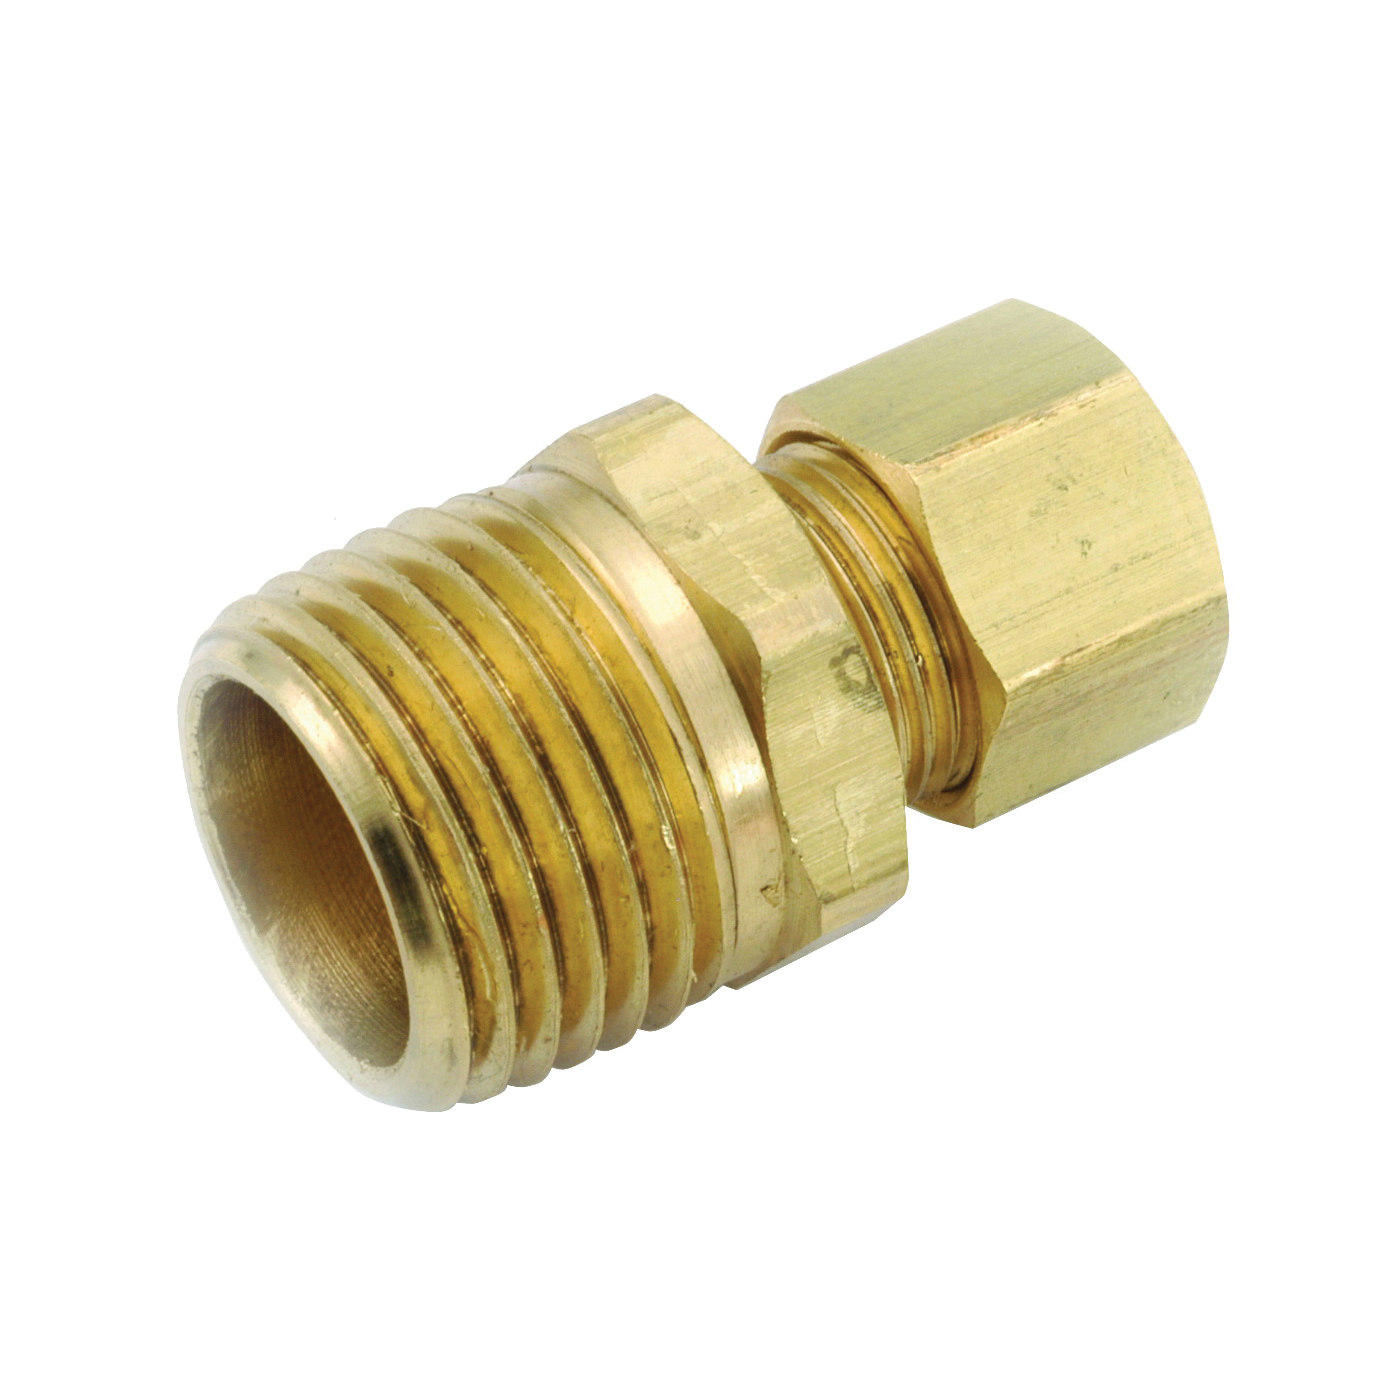 Picture of Anderson Metals 750068-0402 Connector, 1/4 in Compression, 1/8 in Male